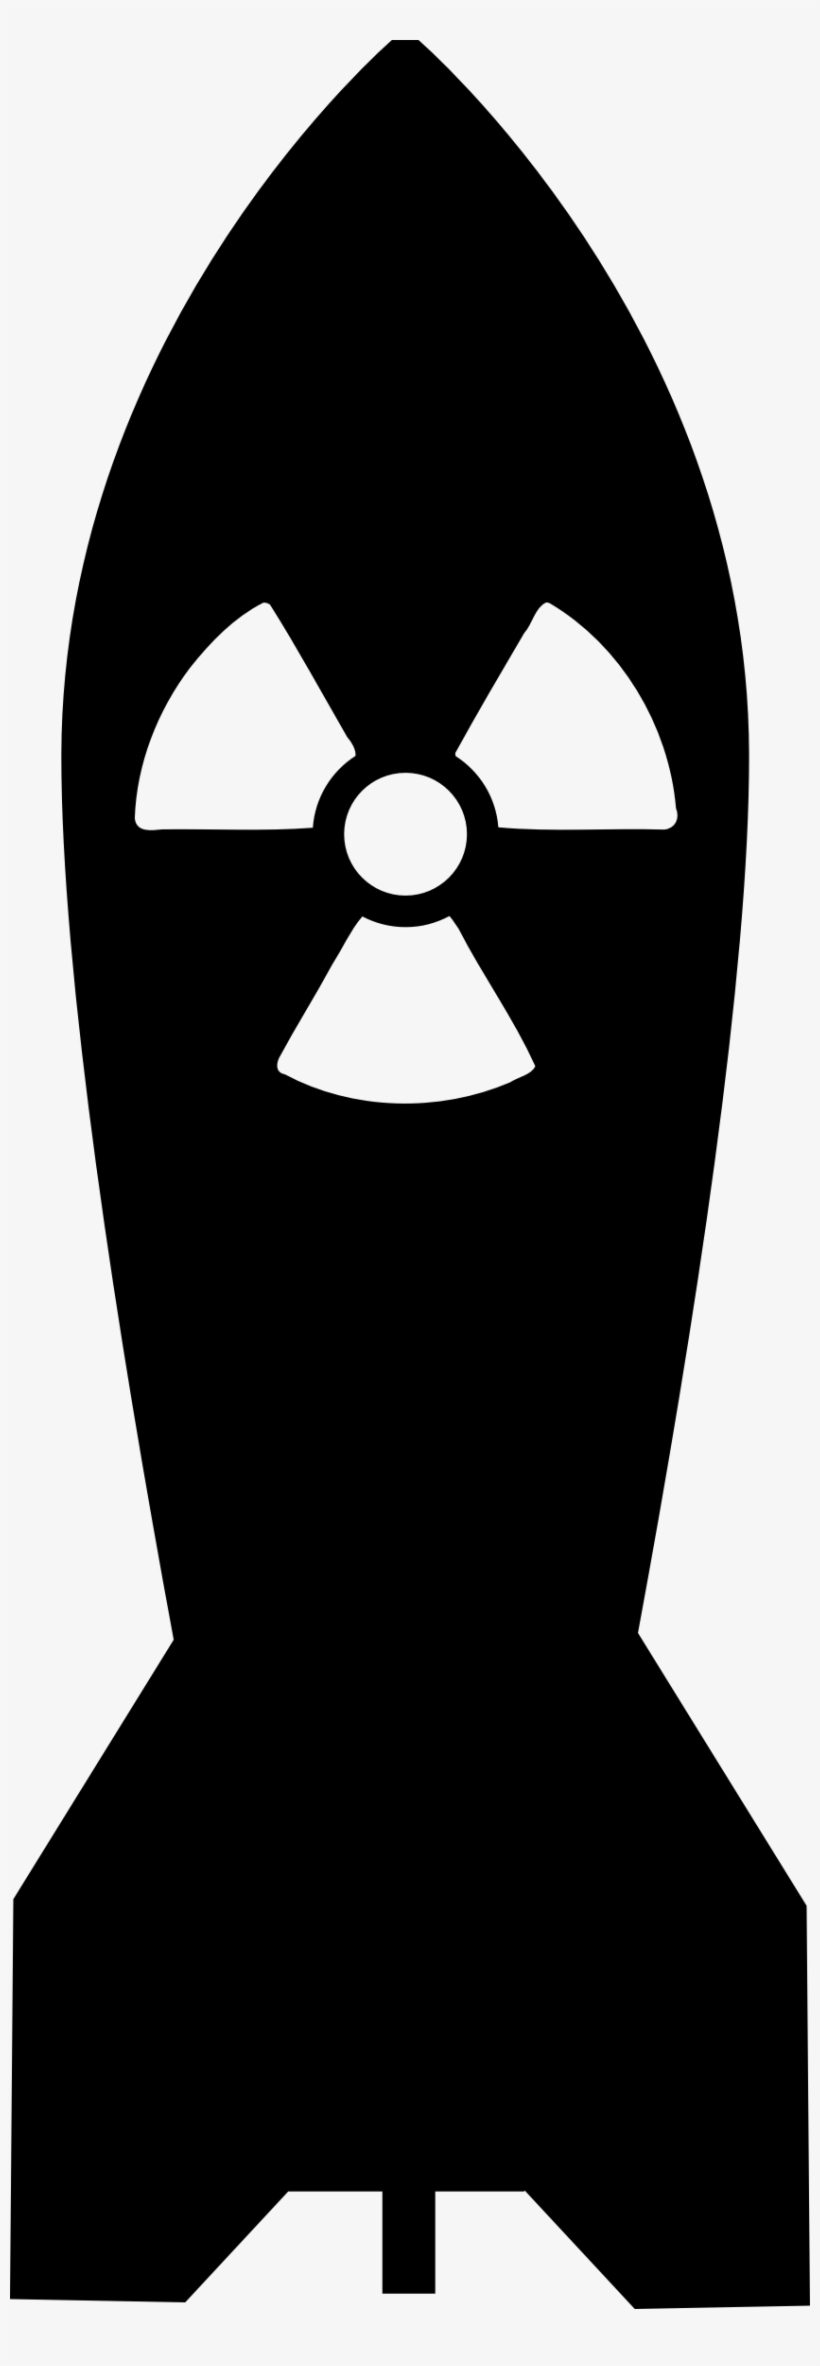 banner freeuse download Atom bomb clipart. Atomic png images cliparts.